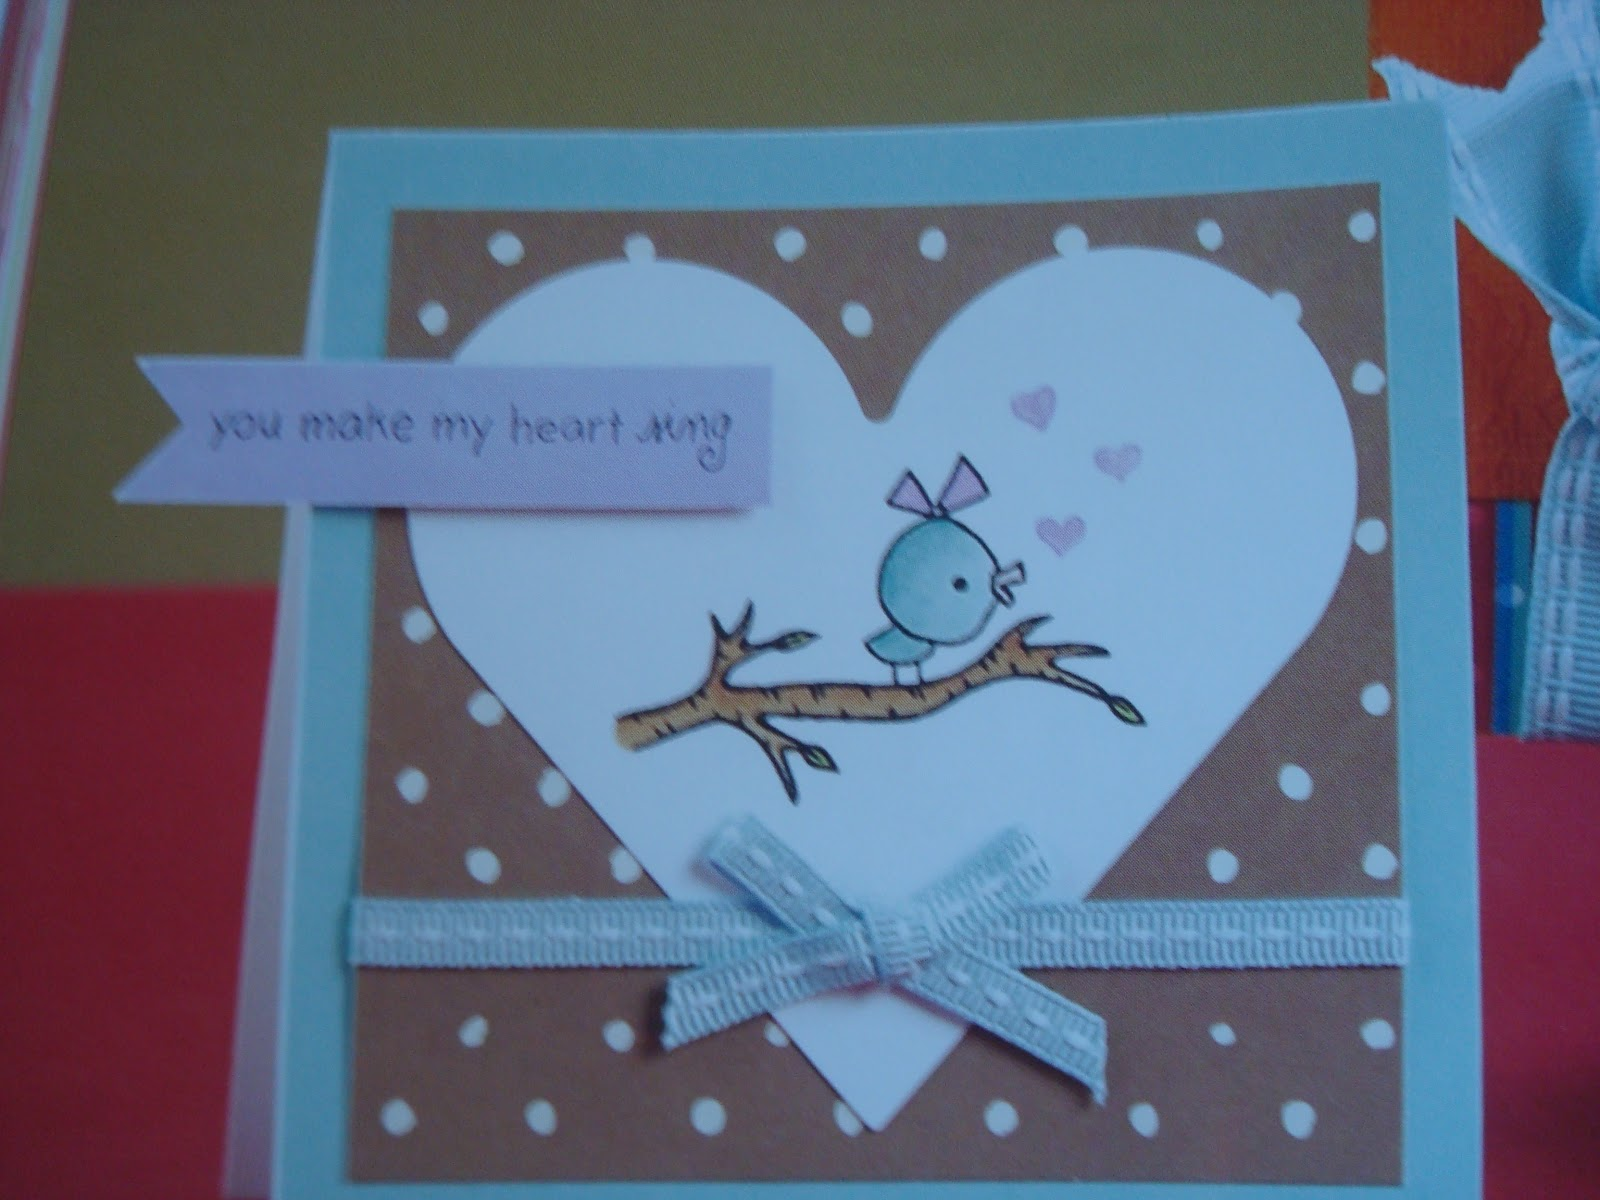 Paper Craft Ideas They Have A Huge Valentines Day Section Which Will Help With For Next Years Hospitalized Veterans Project As